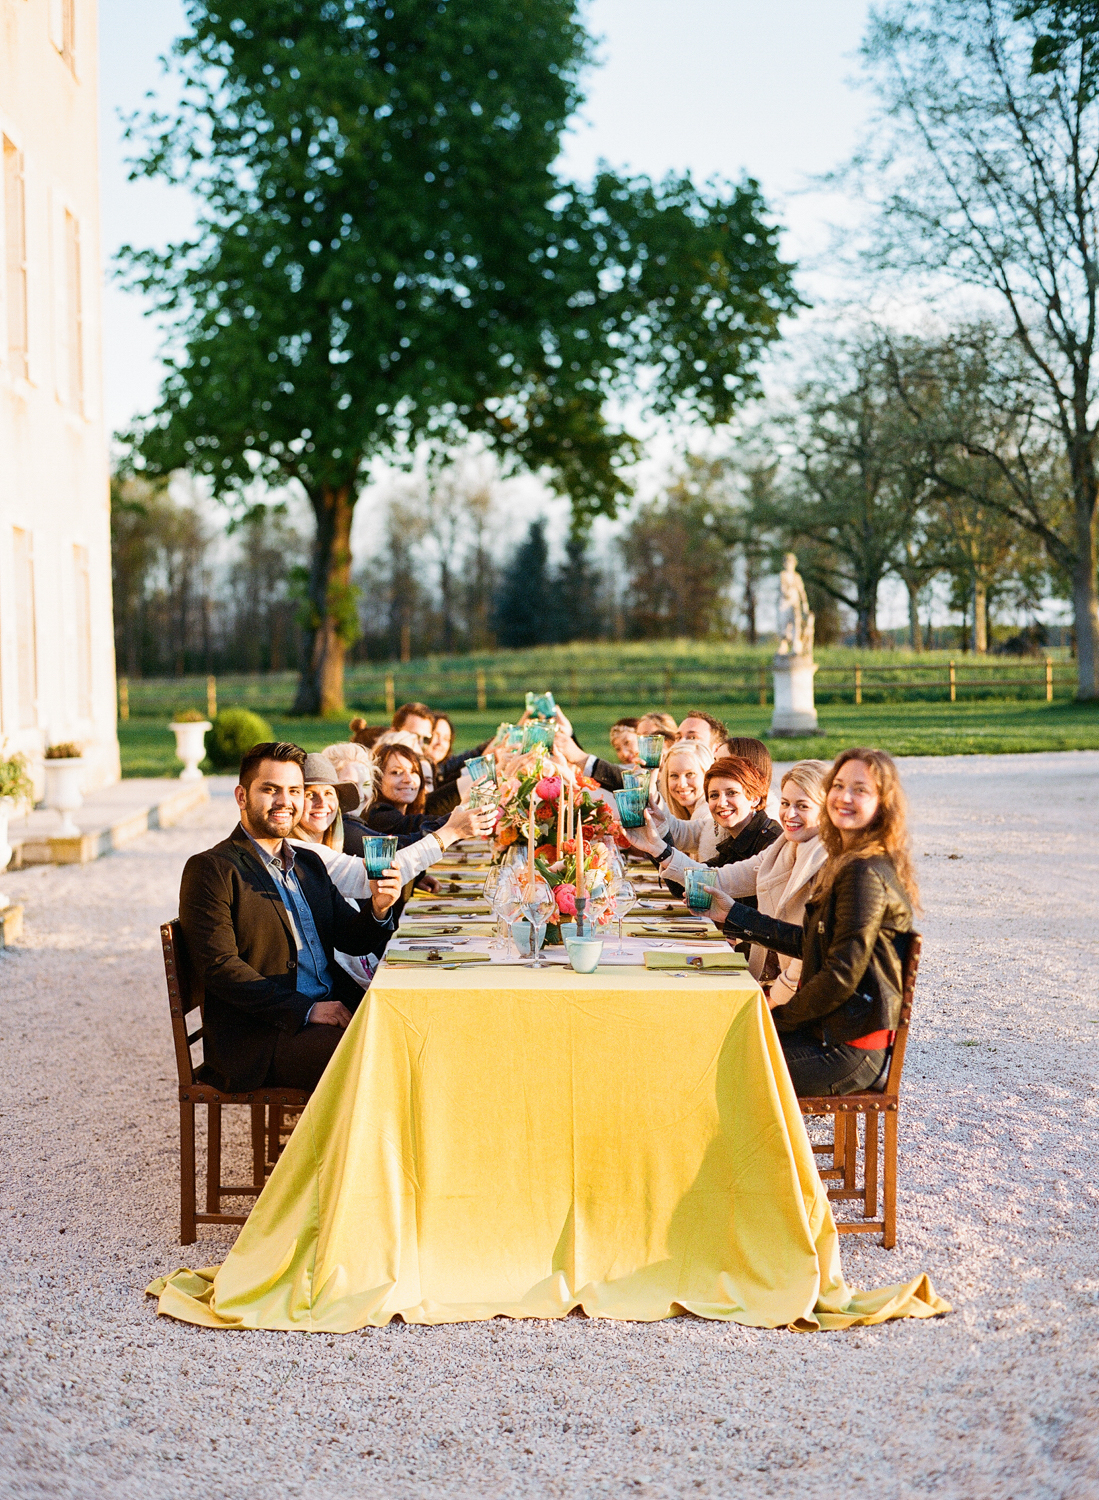 Sylvie Gil Workshop 2016 attendees enjoying a sunset dinner at the beautifully set jewel-toned reception table; photo by Sylvie Gil